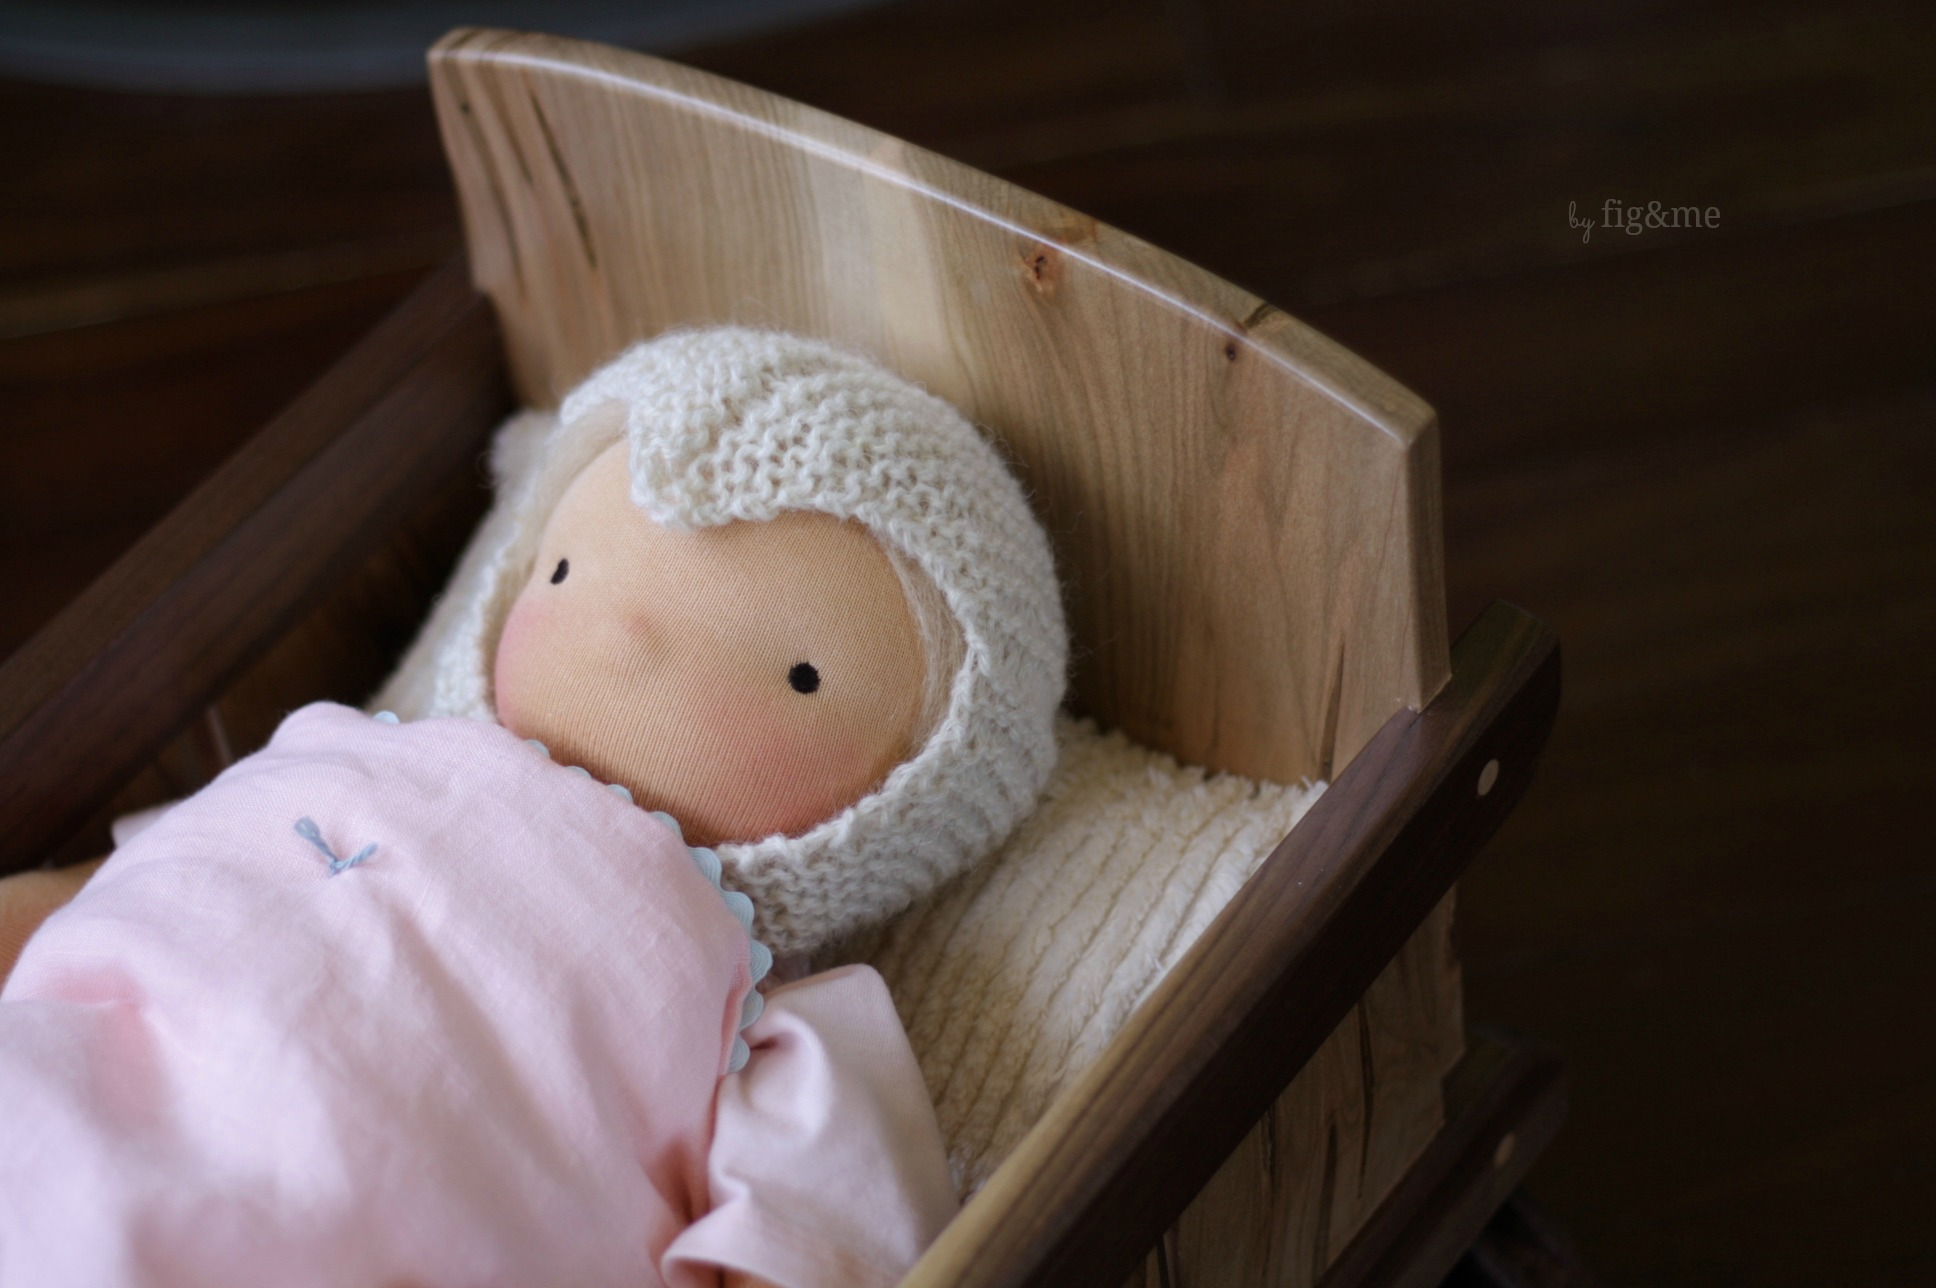 Baby Lou in her cradle, by Fig&me